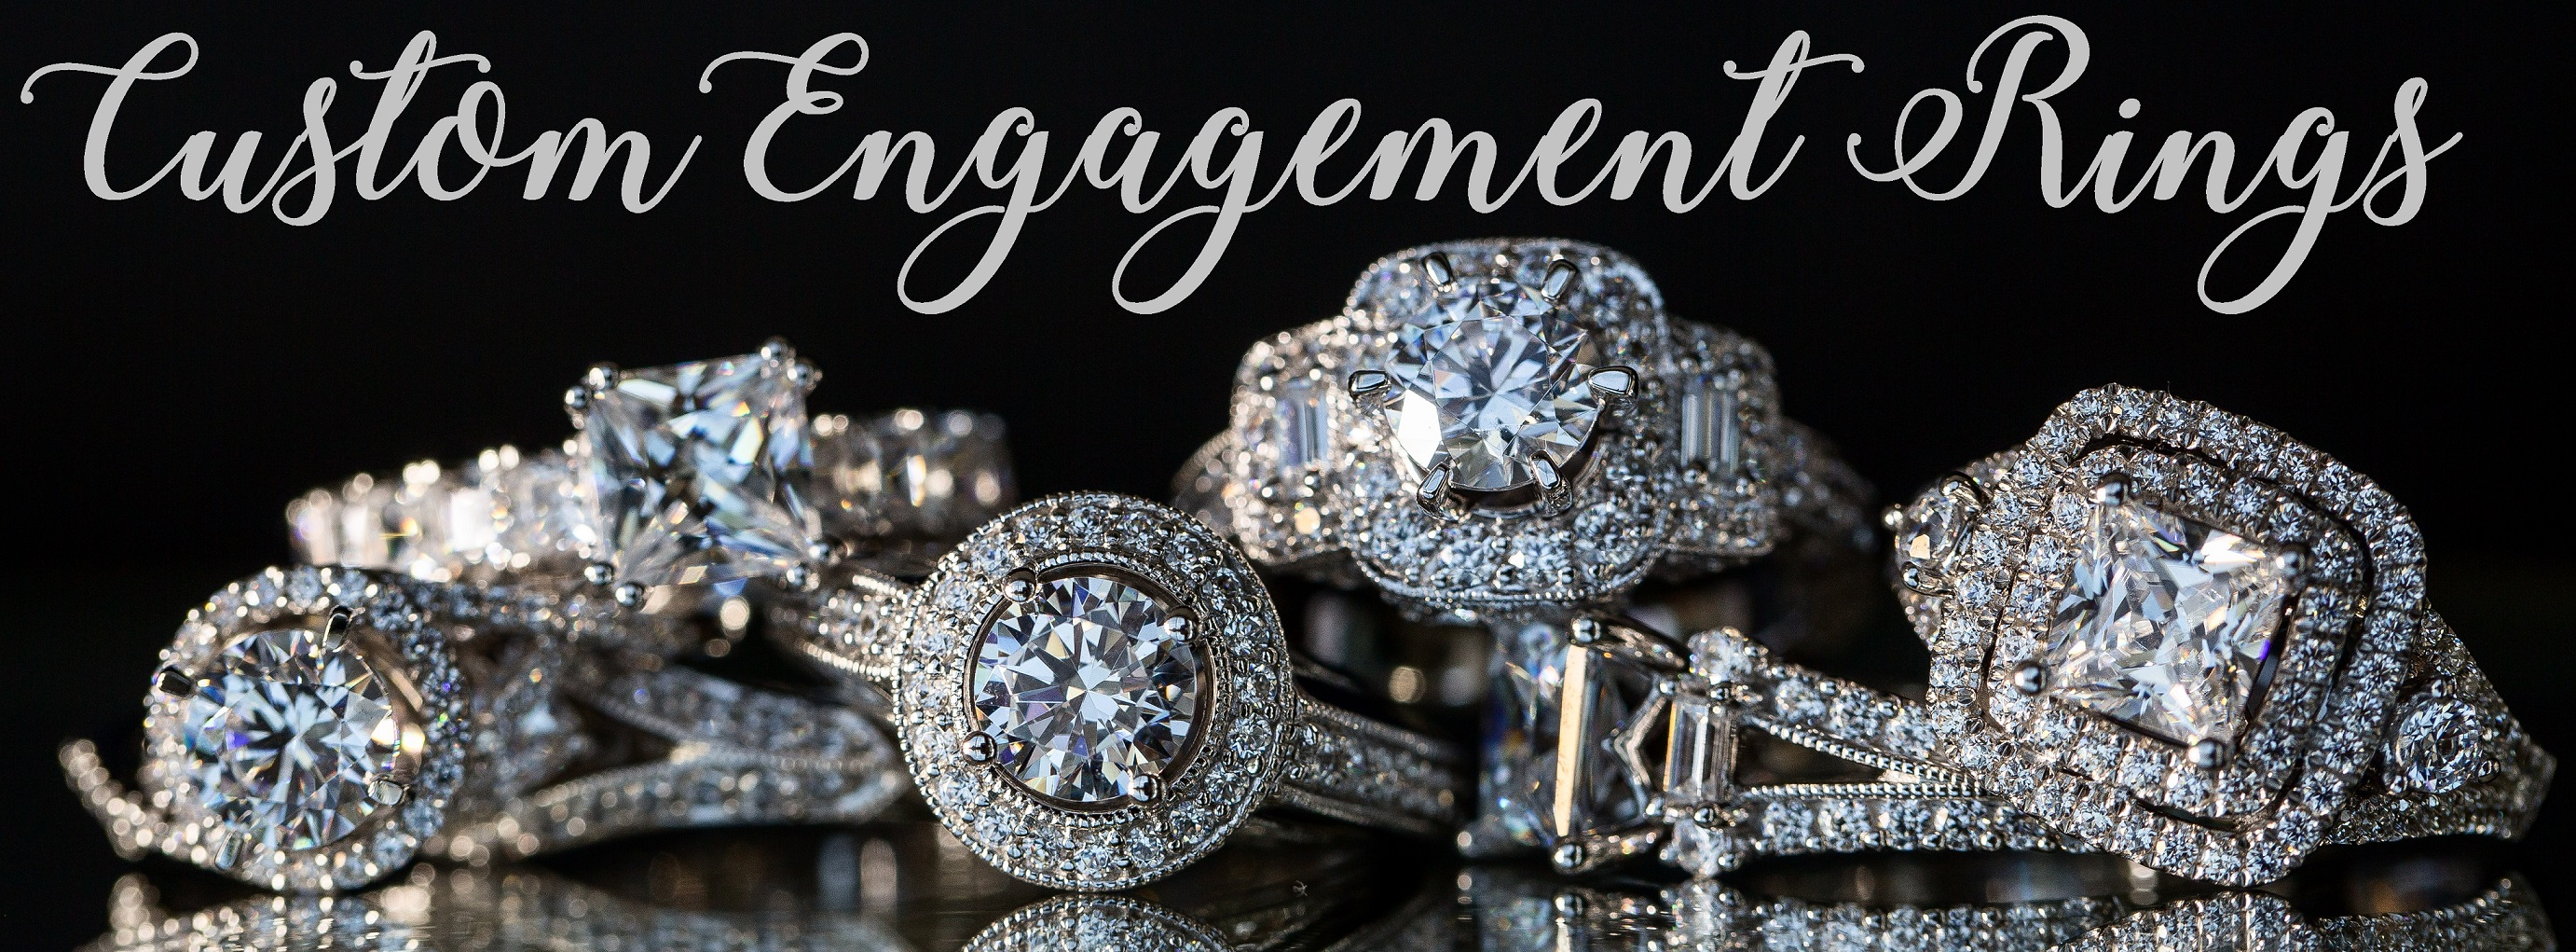 CustomEngagementRings1